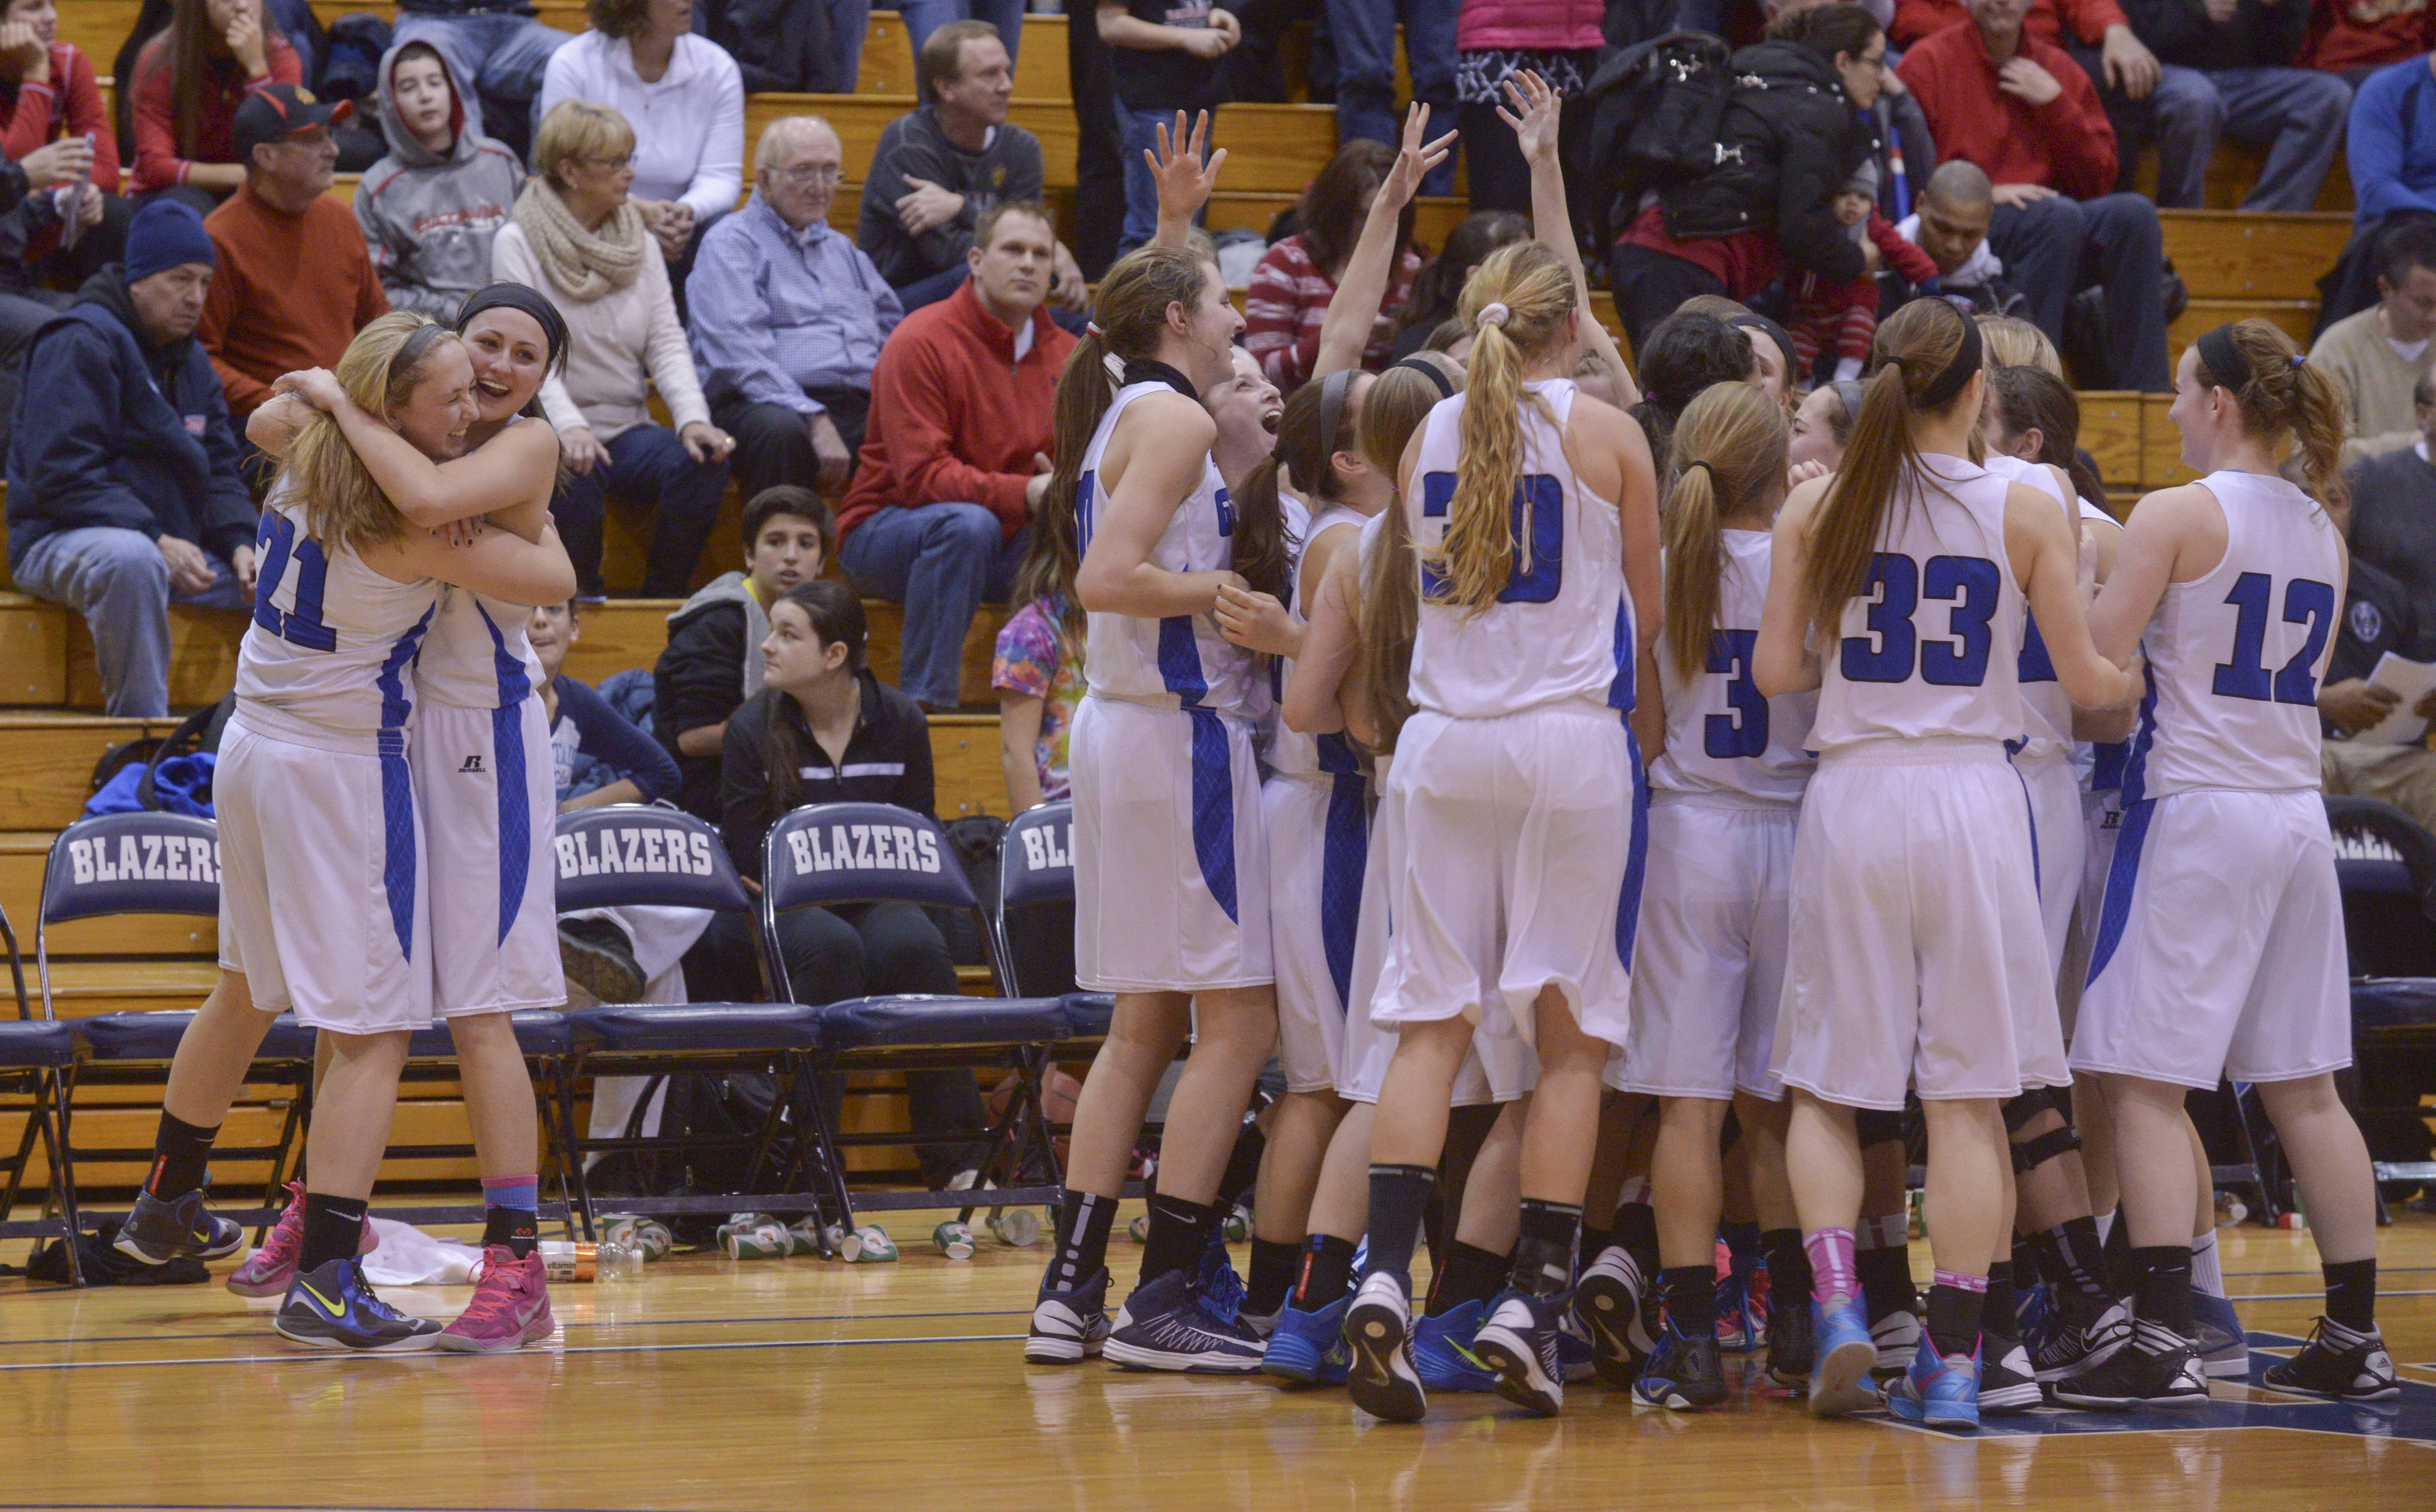 Geneva celebrates their 48-24 win over Batavia in the Class 4A girls basketball sectional final game at Addison Trail in Addison, Thursday.